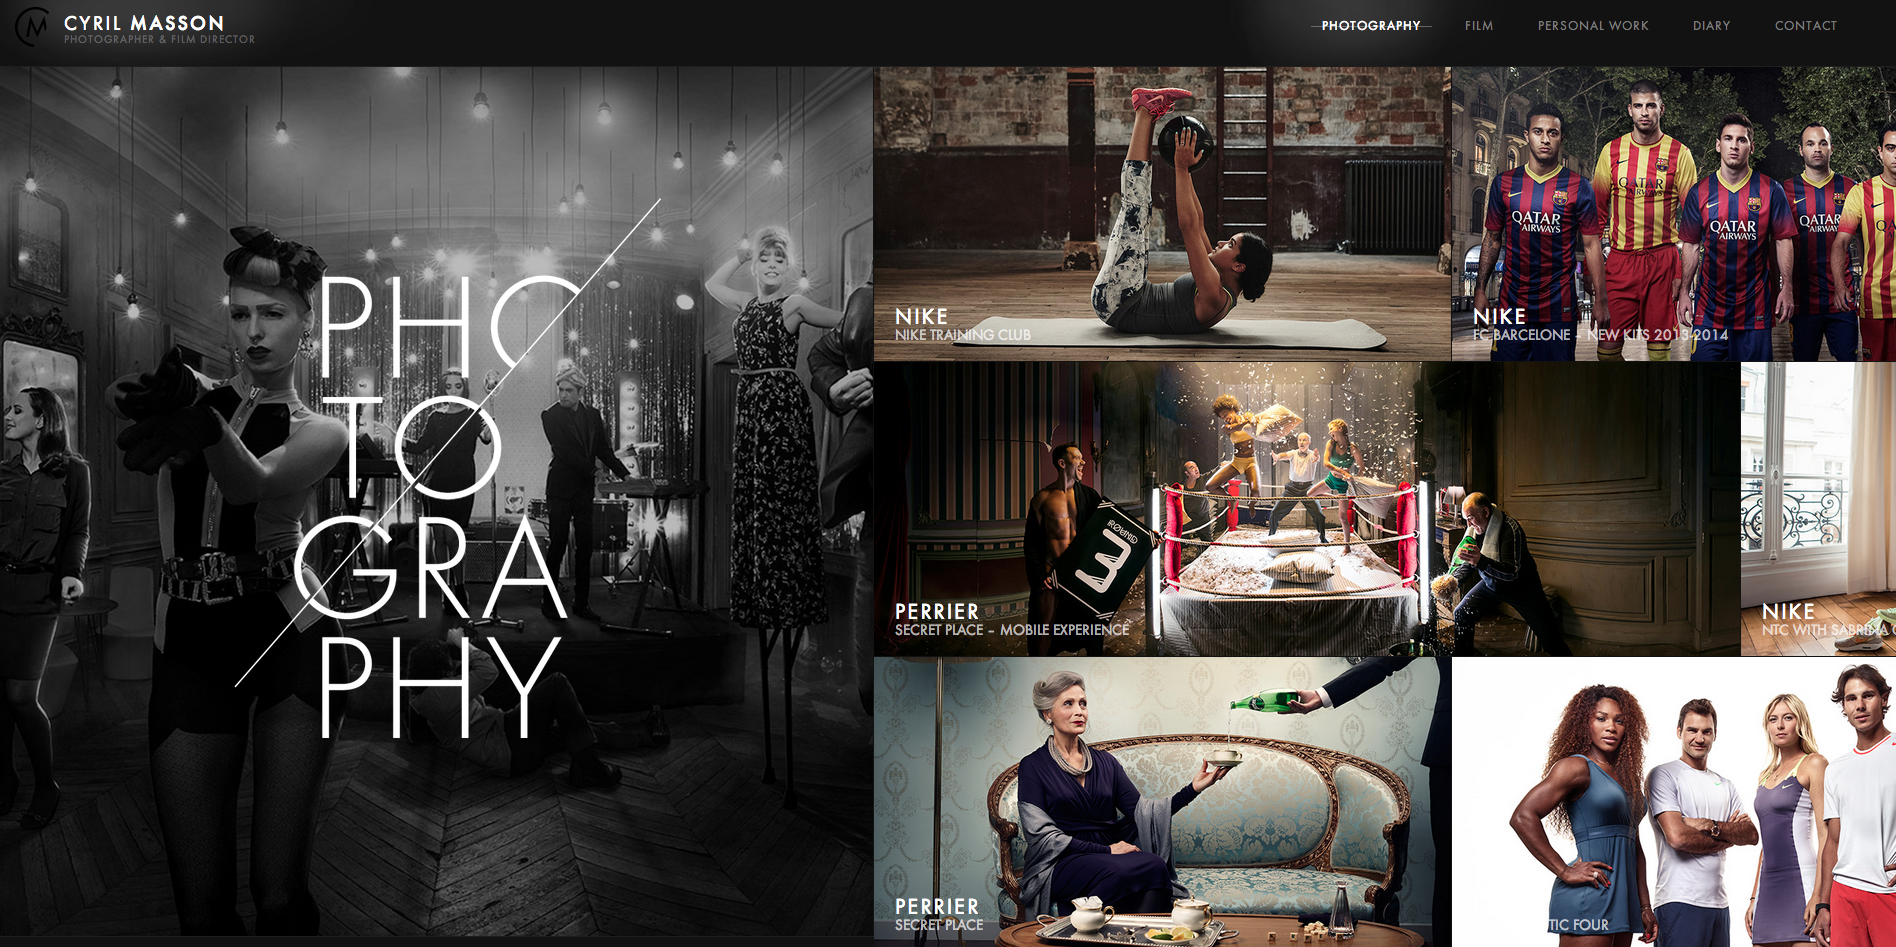 http://cyrilmasson.com/  the mood of the website. Interesting layout of the works.